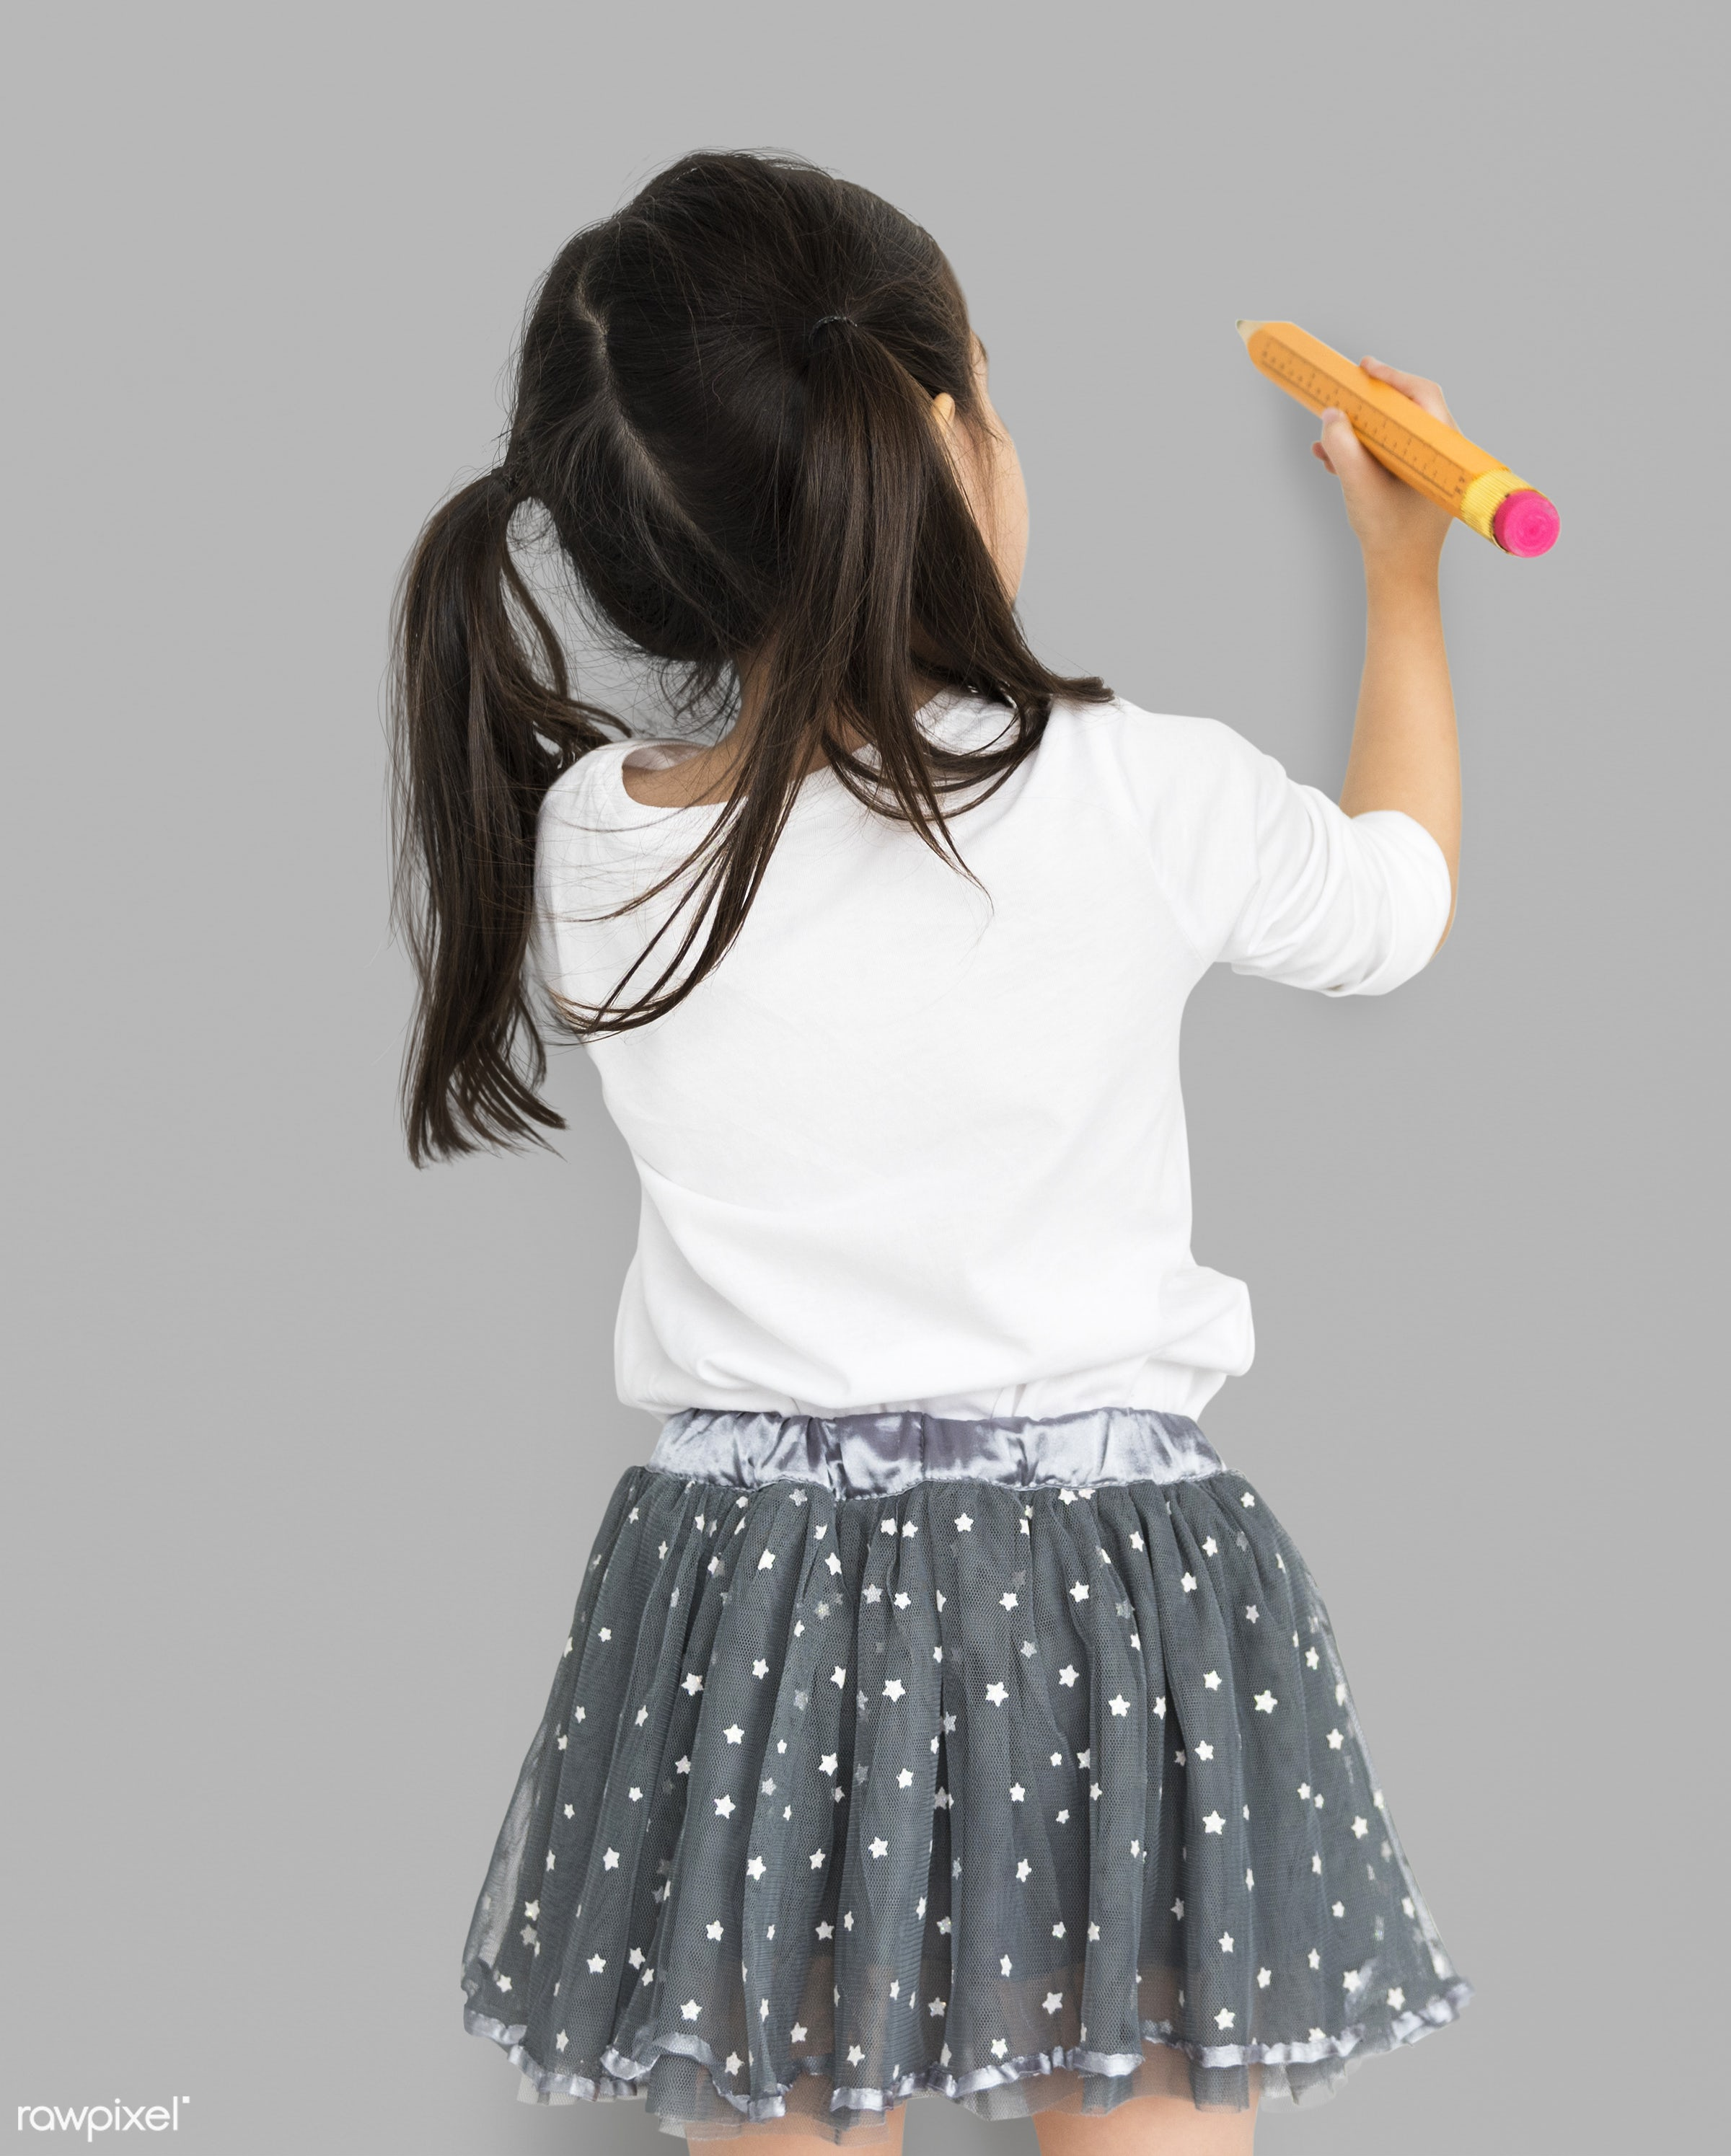 studio, expression, person, little, recreation, people, kid, isolated, little girl, paint, happiness, leisure, fun, shoot,...